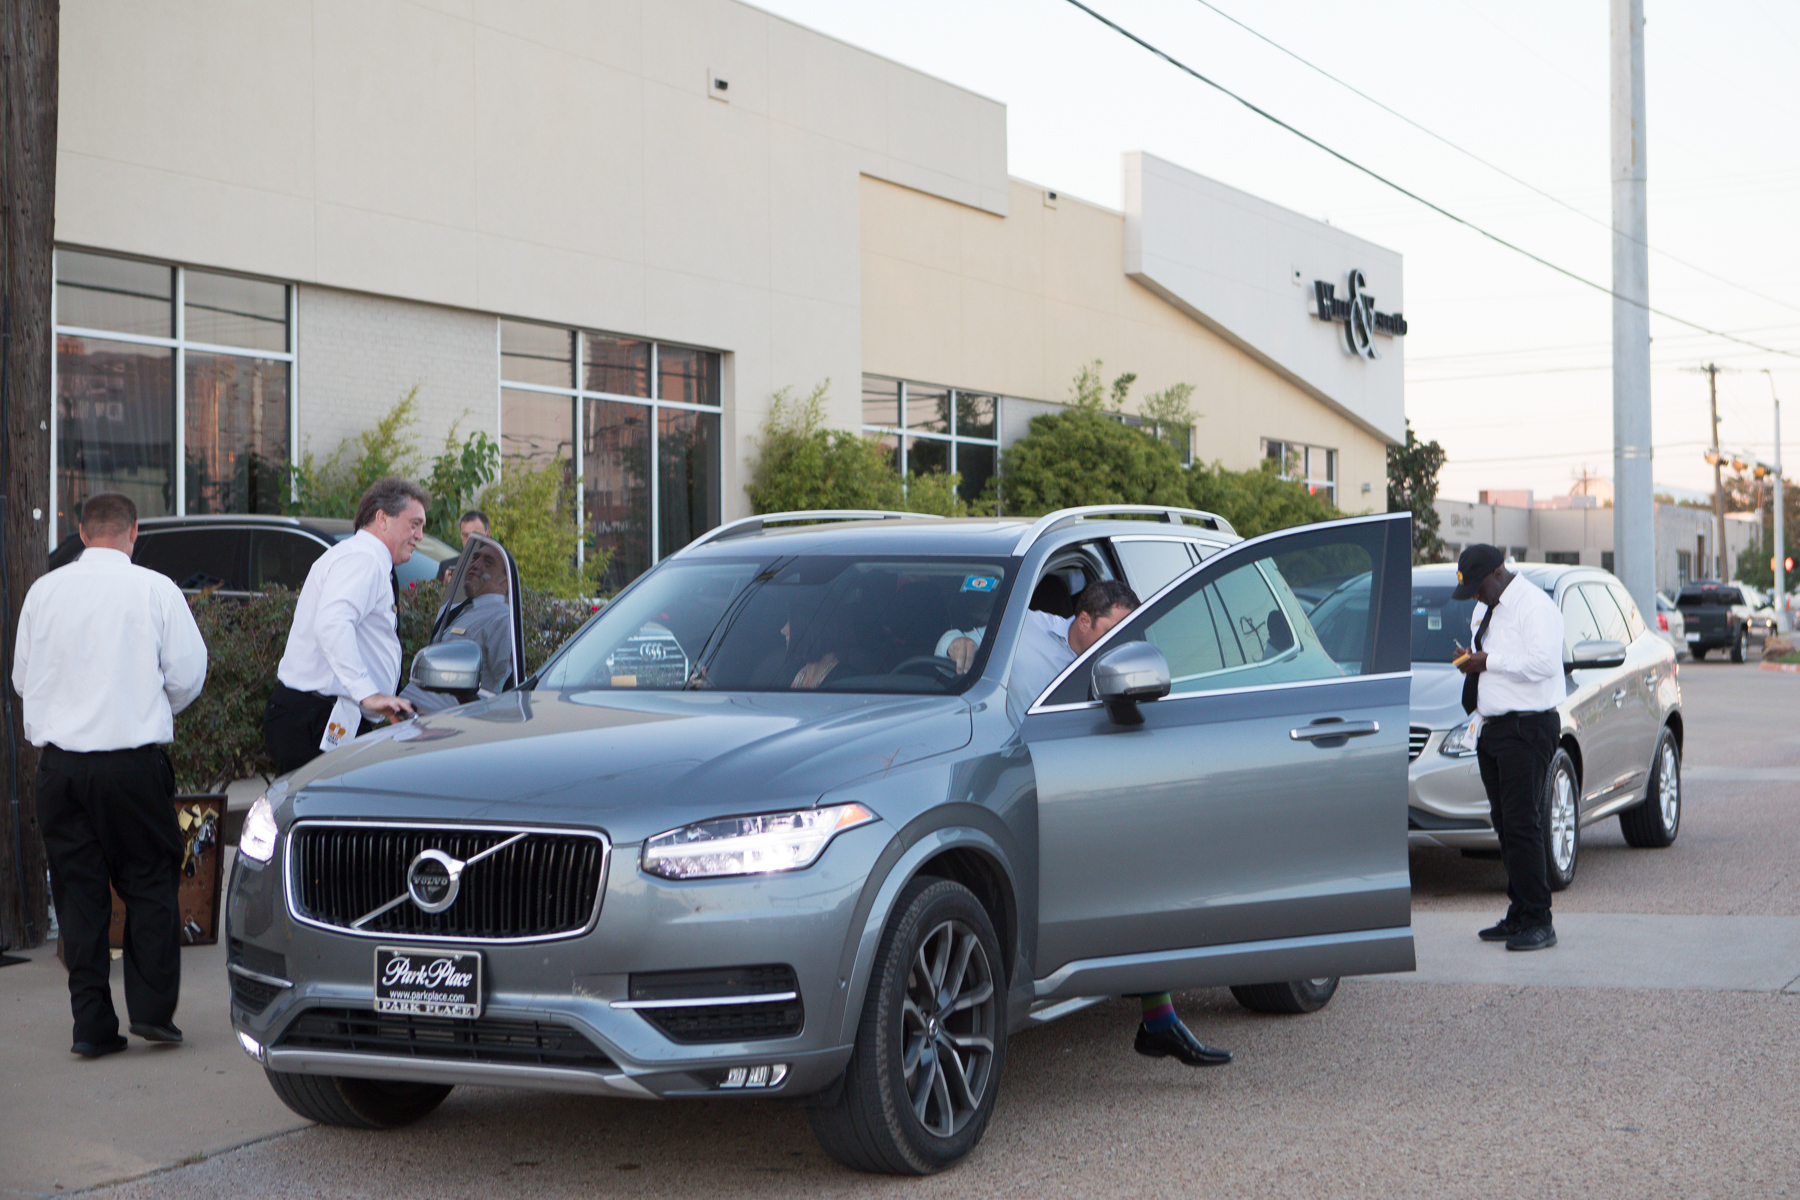 Best Luxury Compact Suv >> Volvo Xc60 Named Best Luxury Compact Suv Of 2018 By Cars Com